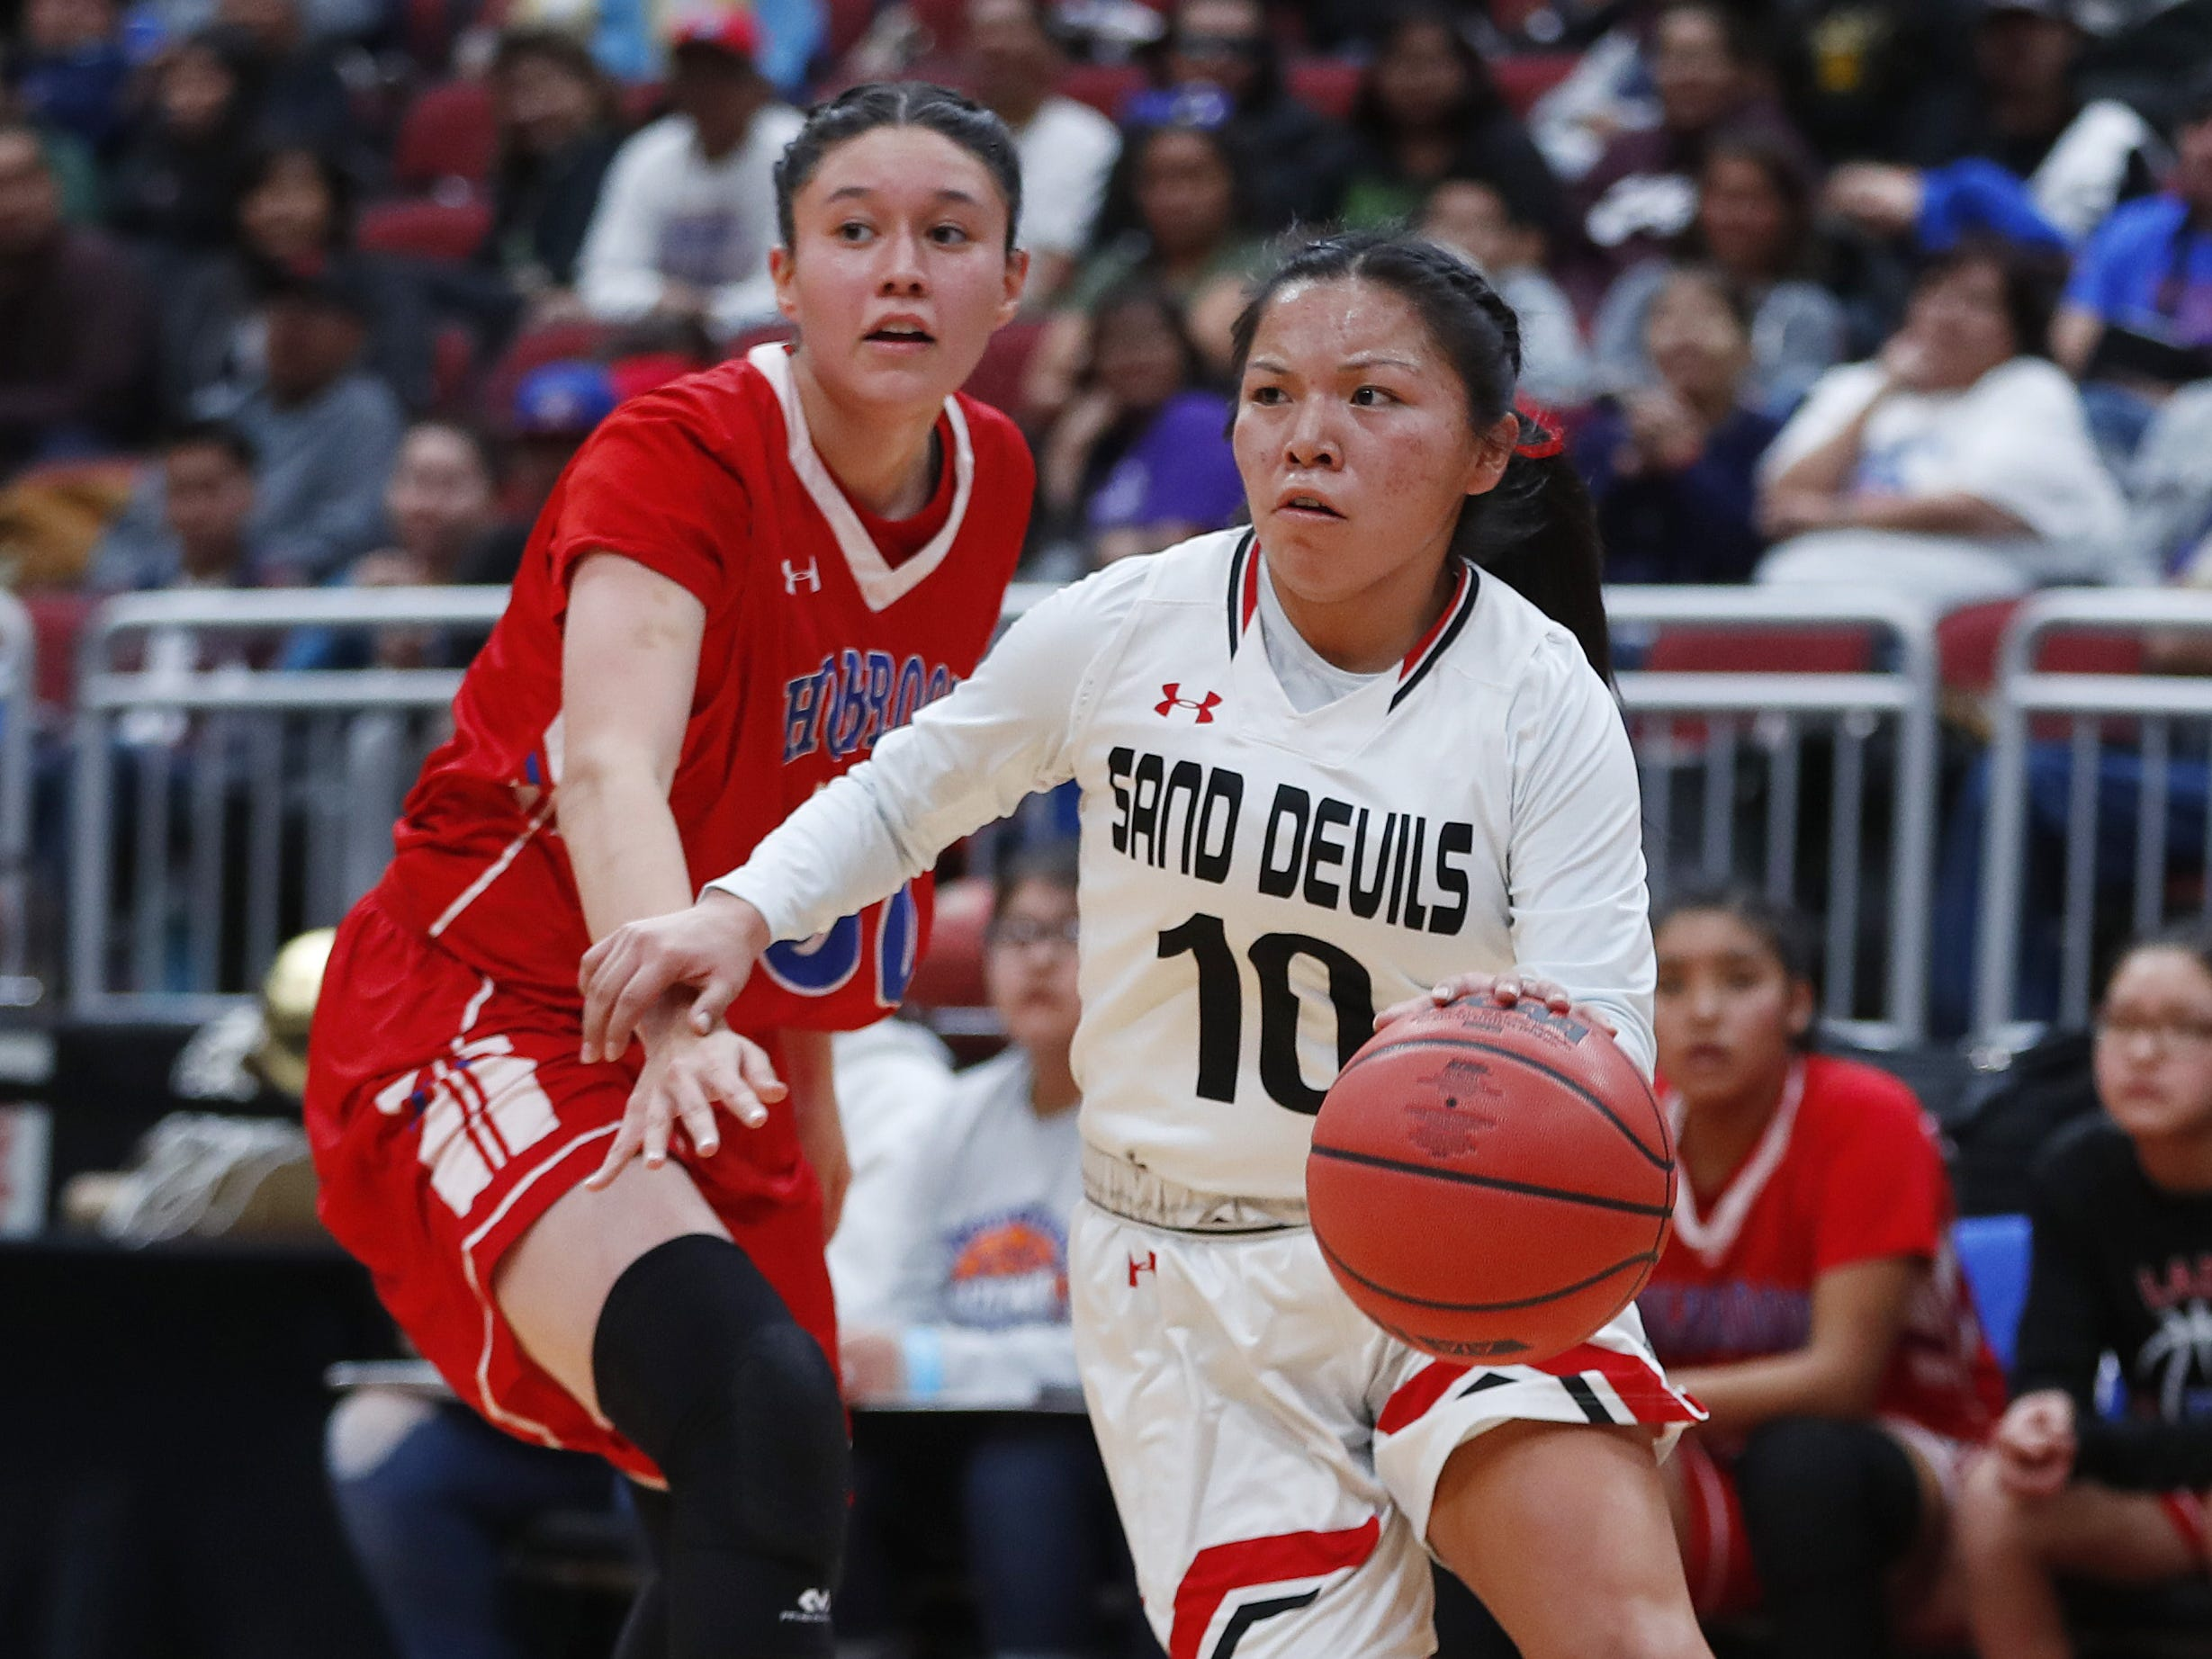 Page's Mikala Benally (10) drives past Holbrook's Matehya Aberle (50) during the first half of the 3A girls basketball state championship at Gila River Arena in Glendale, Ariz. on February 23, 2019.